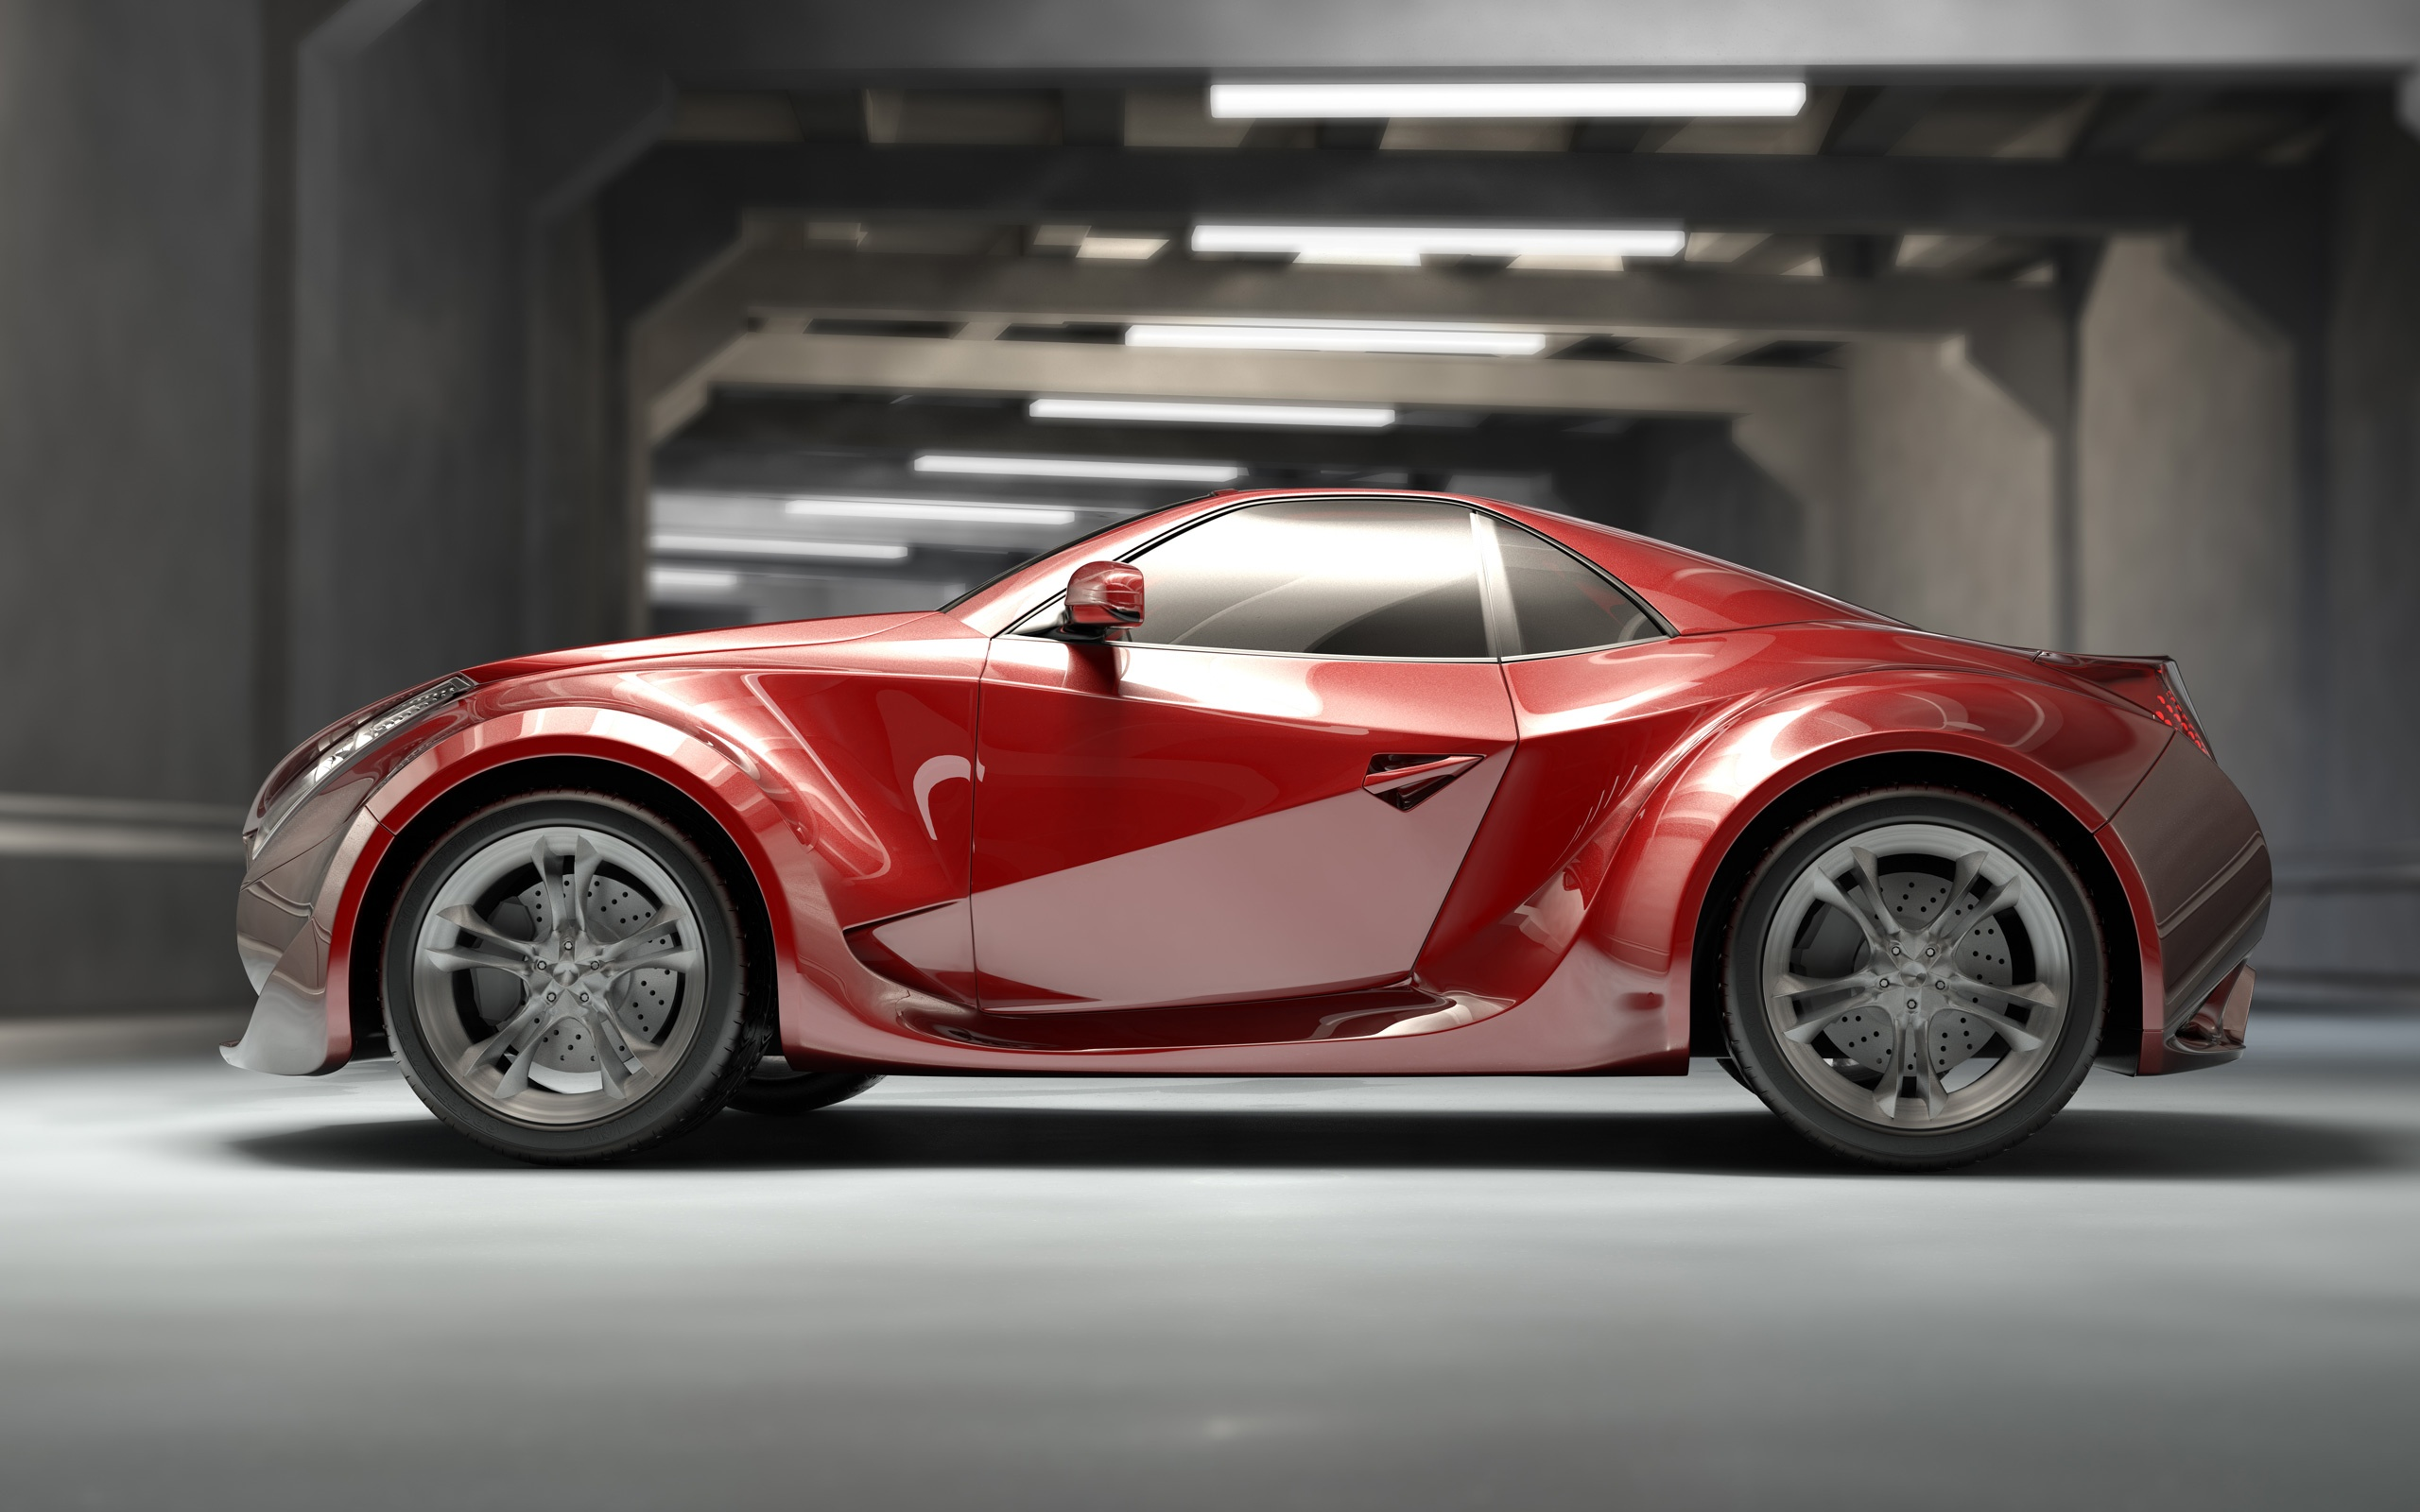 The Future Car Wallpapers in jpg format for free download